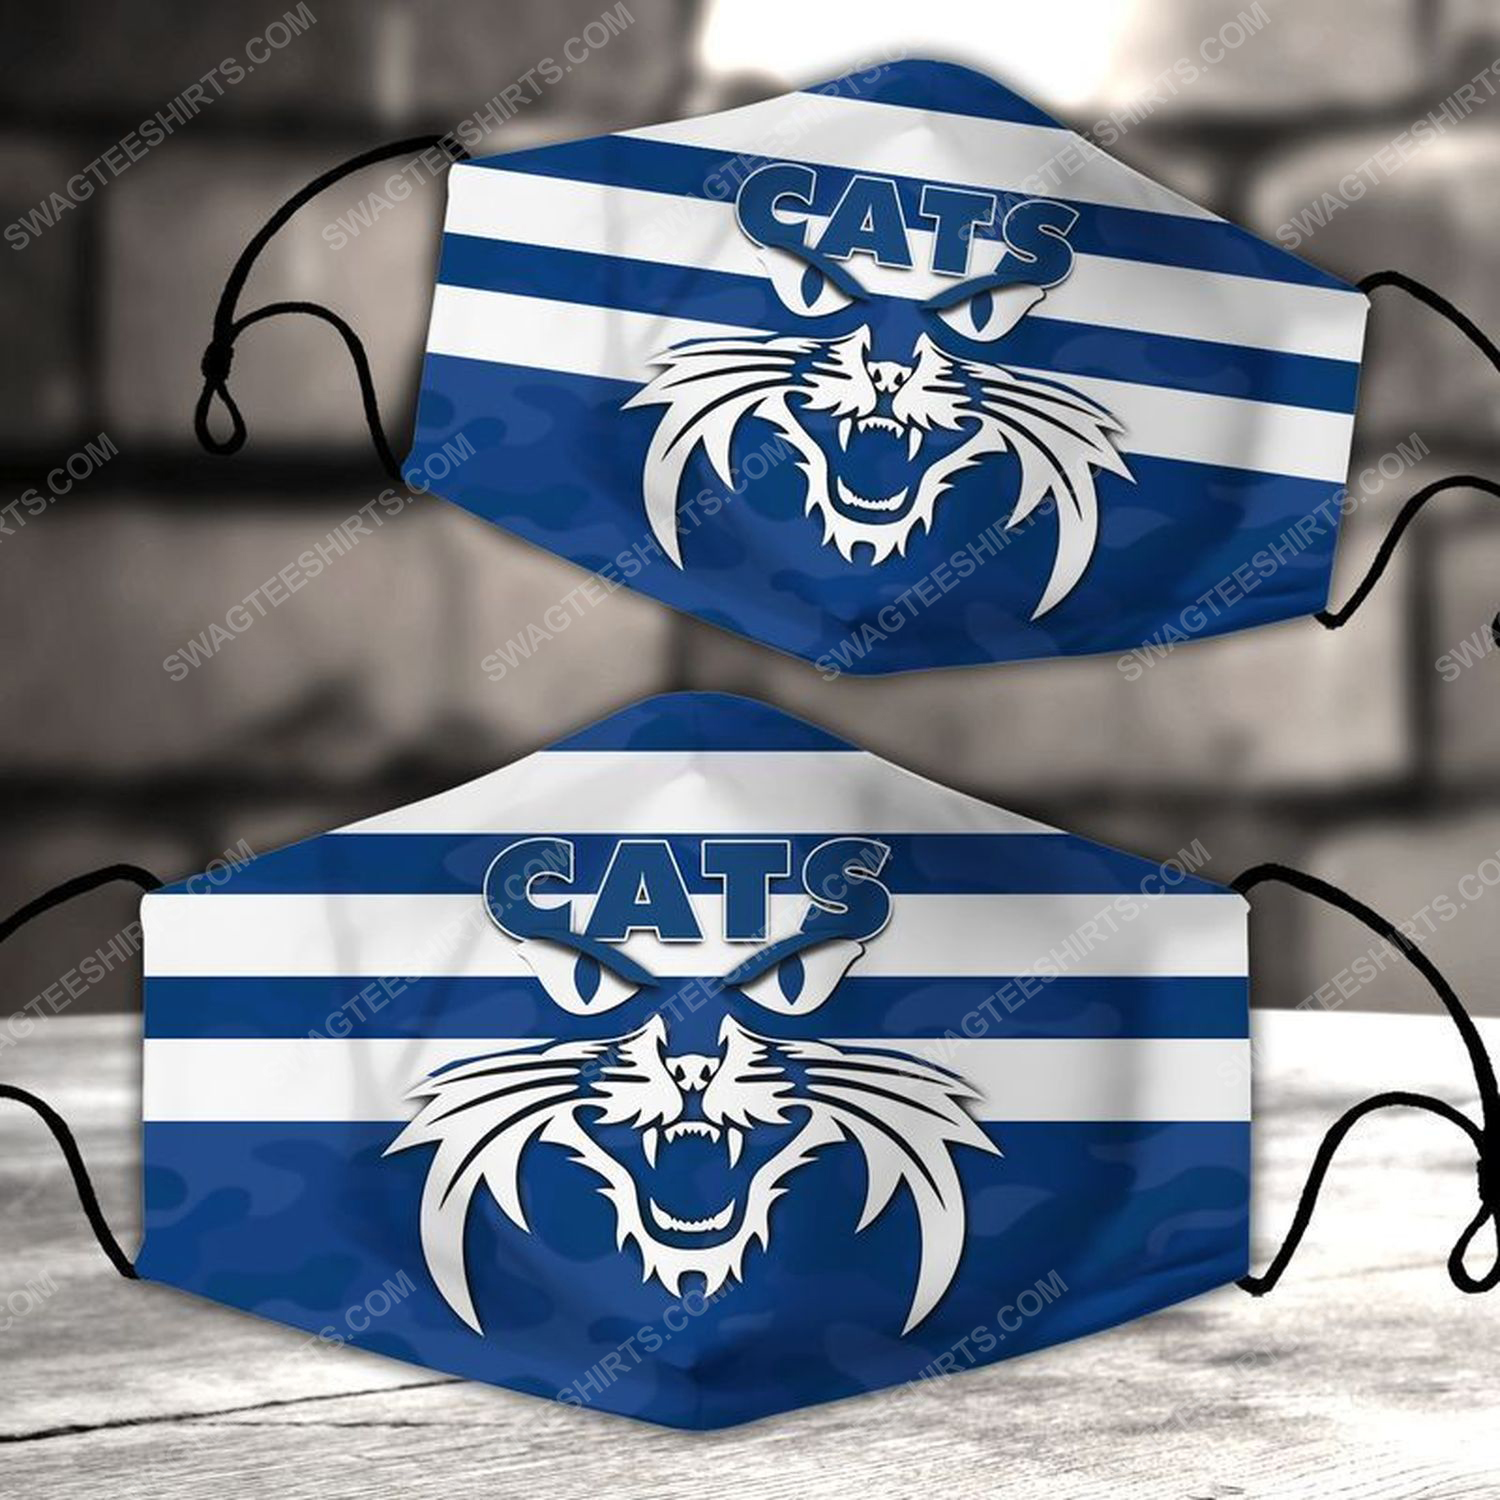 Football club geelong cats all over print face mask